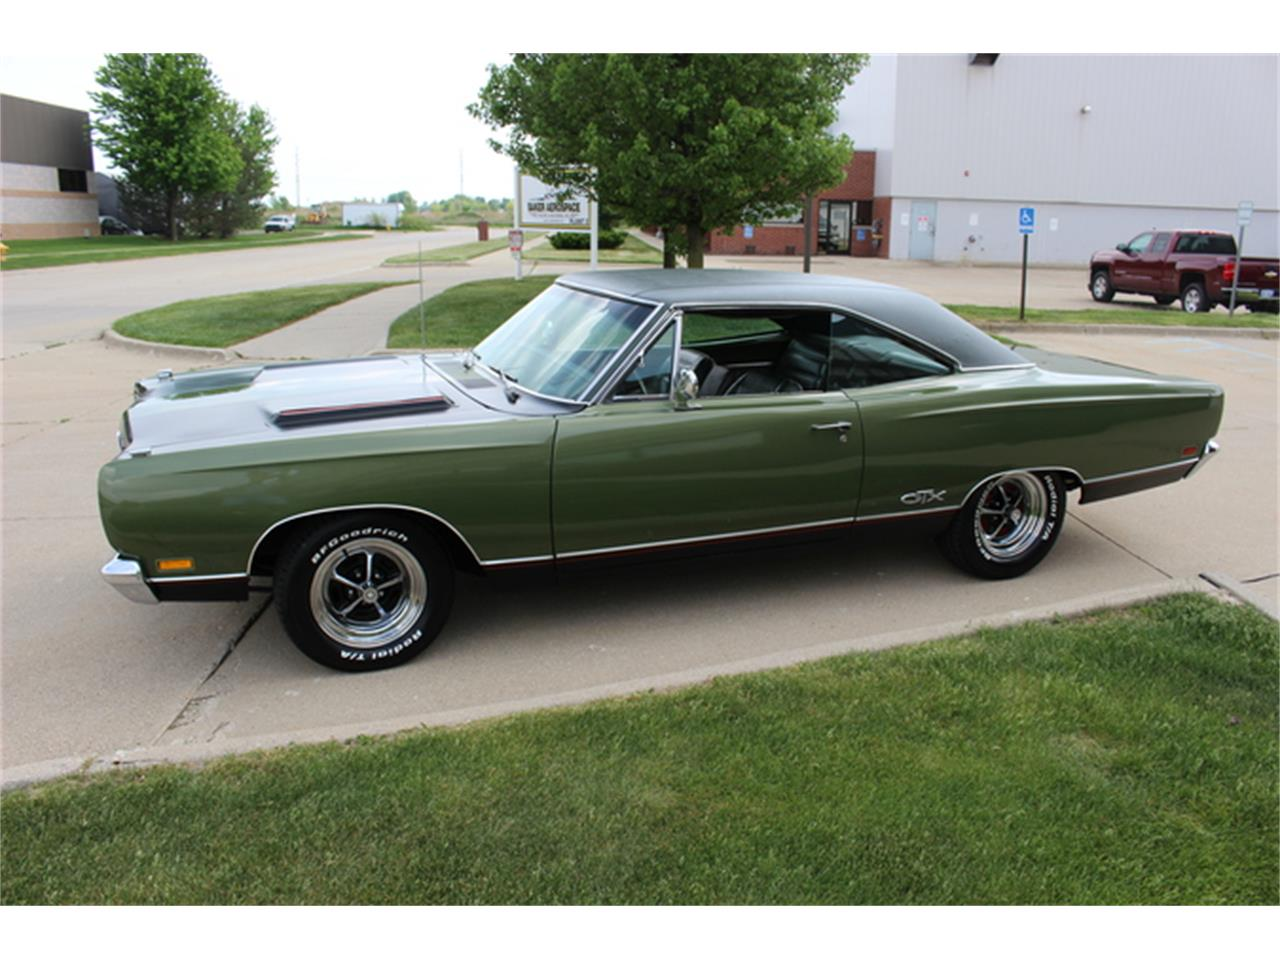 1969 Plymouth Gtx For Sale Cc 889259 1960 Hemi Large Picture Of 69 J25n